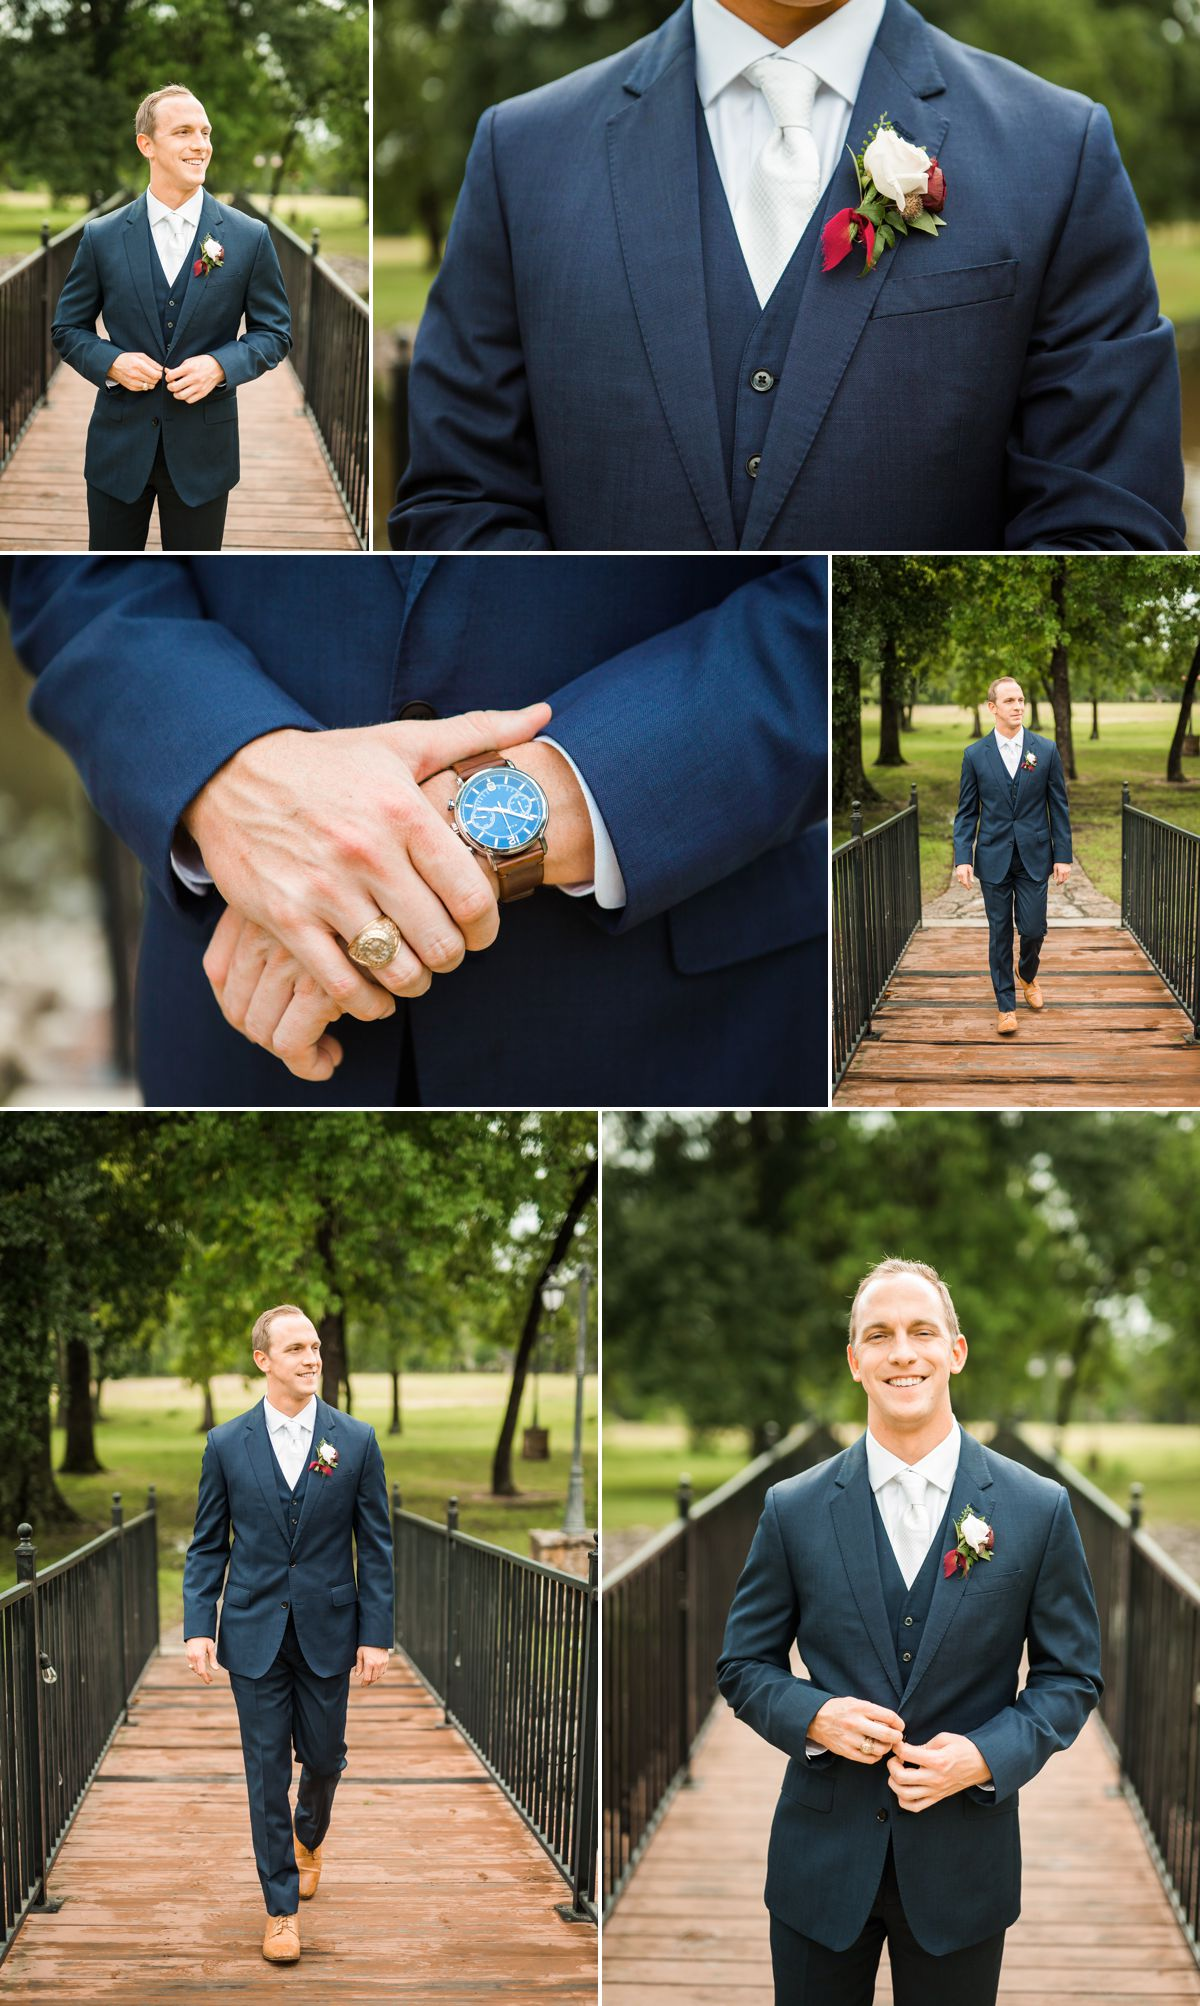 Groom portraits at Balmorhea wedding